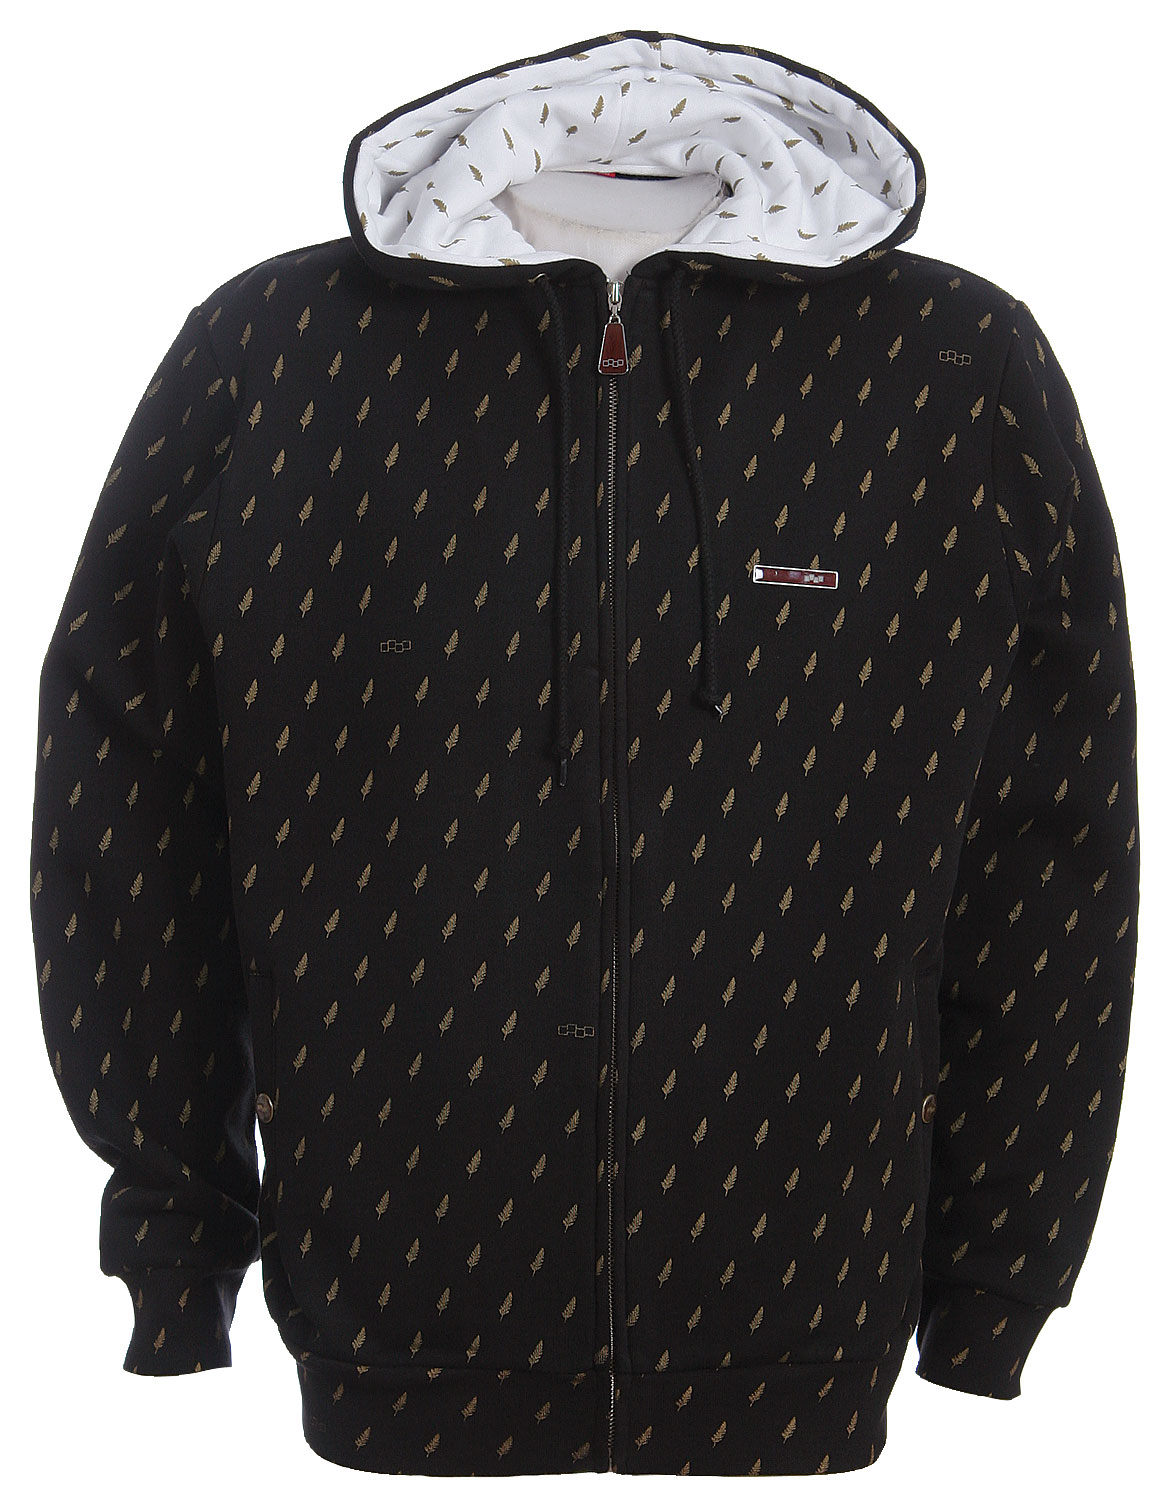 Snowboard The Special Blend Gold Label Fleece Hoodie has a Felt Leather Chest Application, with Paisley Meshed Lined - $16.95